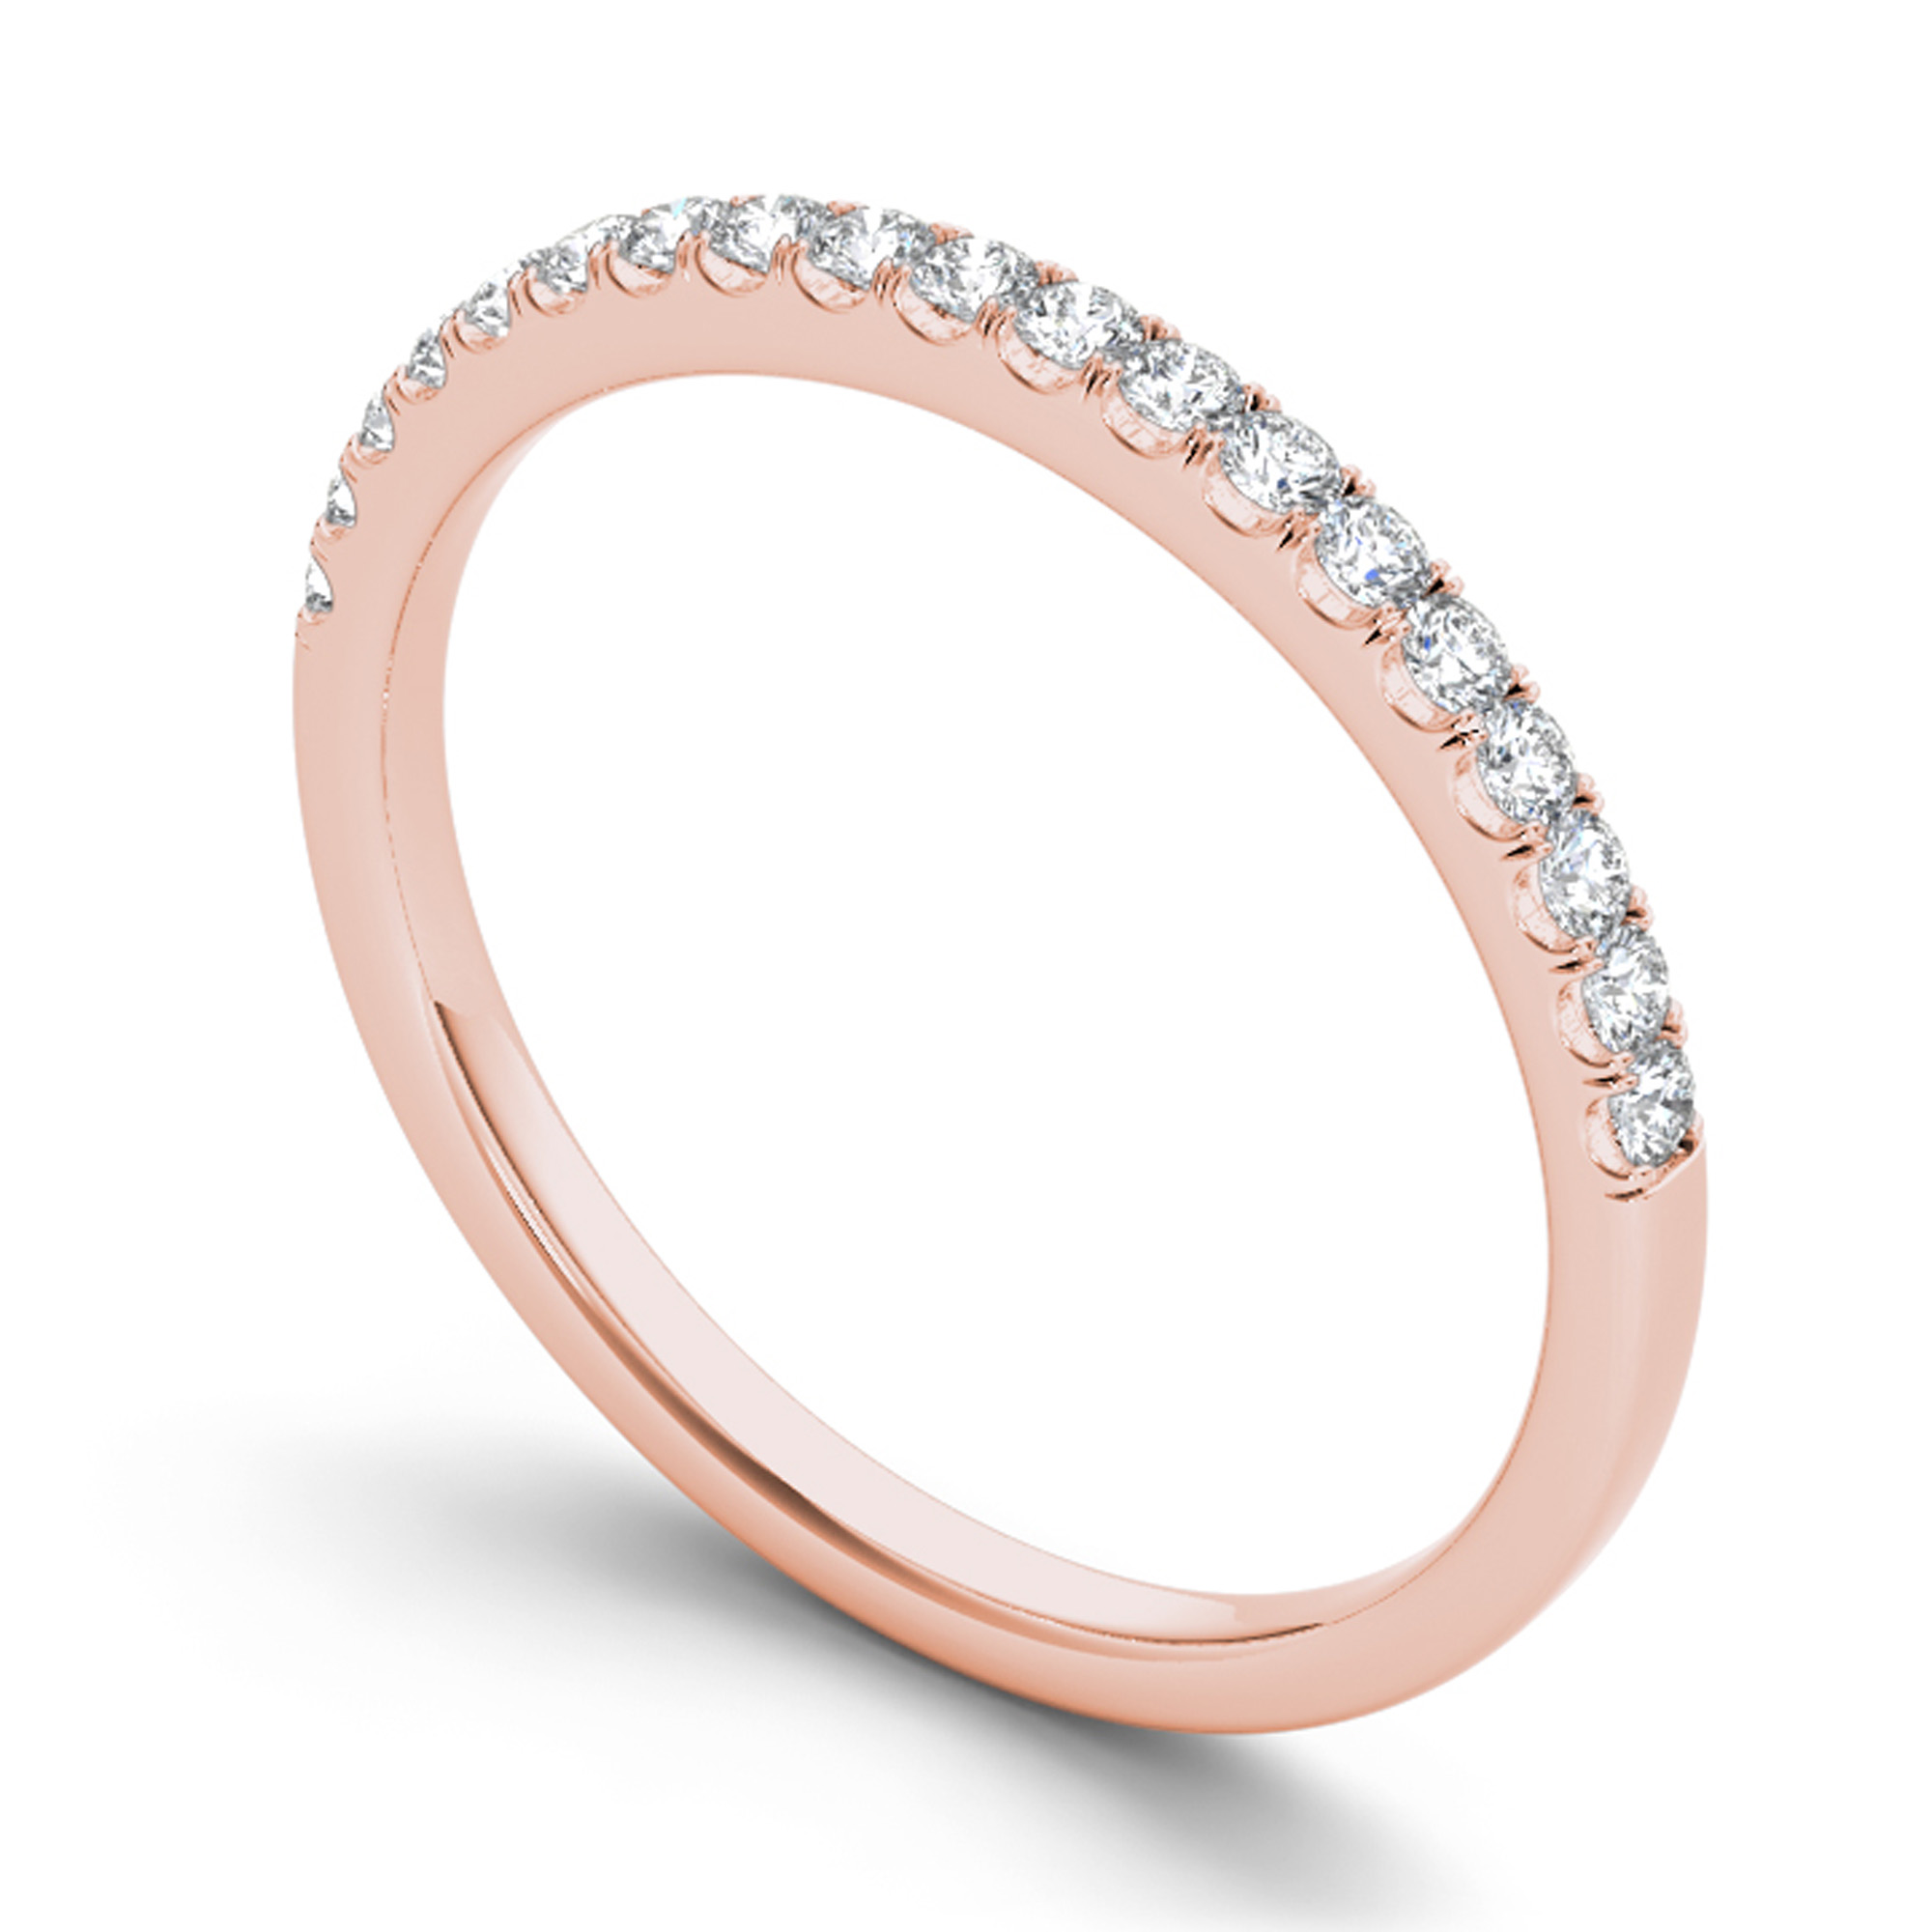 Imperial 1 4 Carat T.W. Diamond 14kt Rose Gold Wedding Band by DE COUER NEW YORK LLC